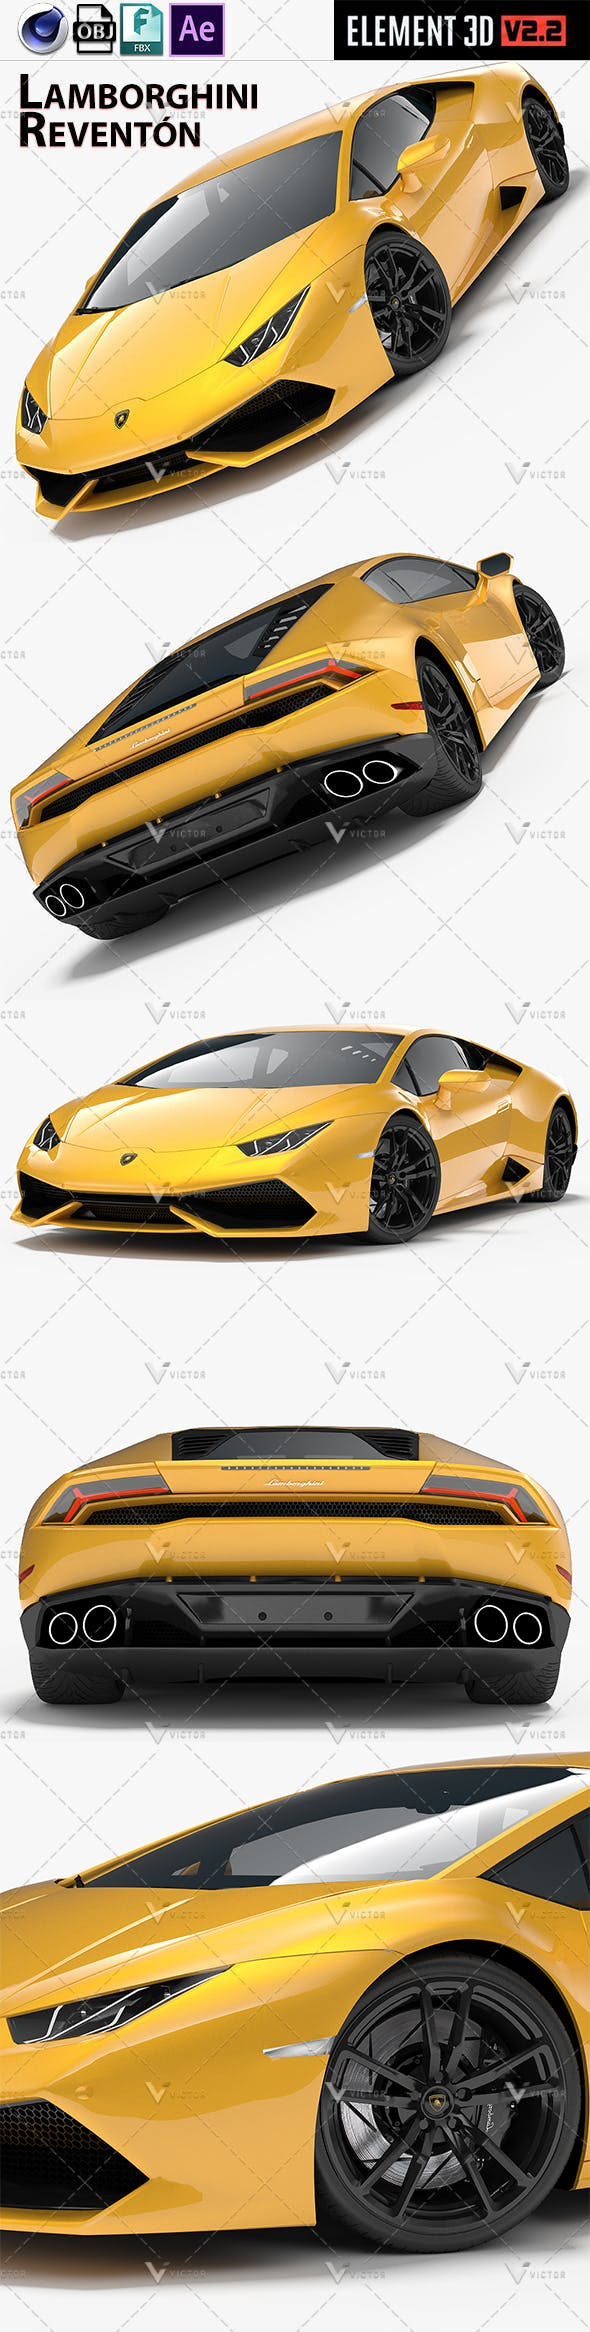 Lamborghini Reventón/ Reventon Element 3d V2 - 3DOcean Item for Sale